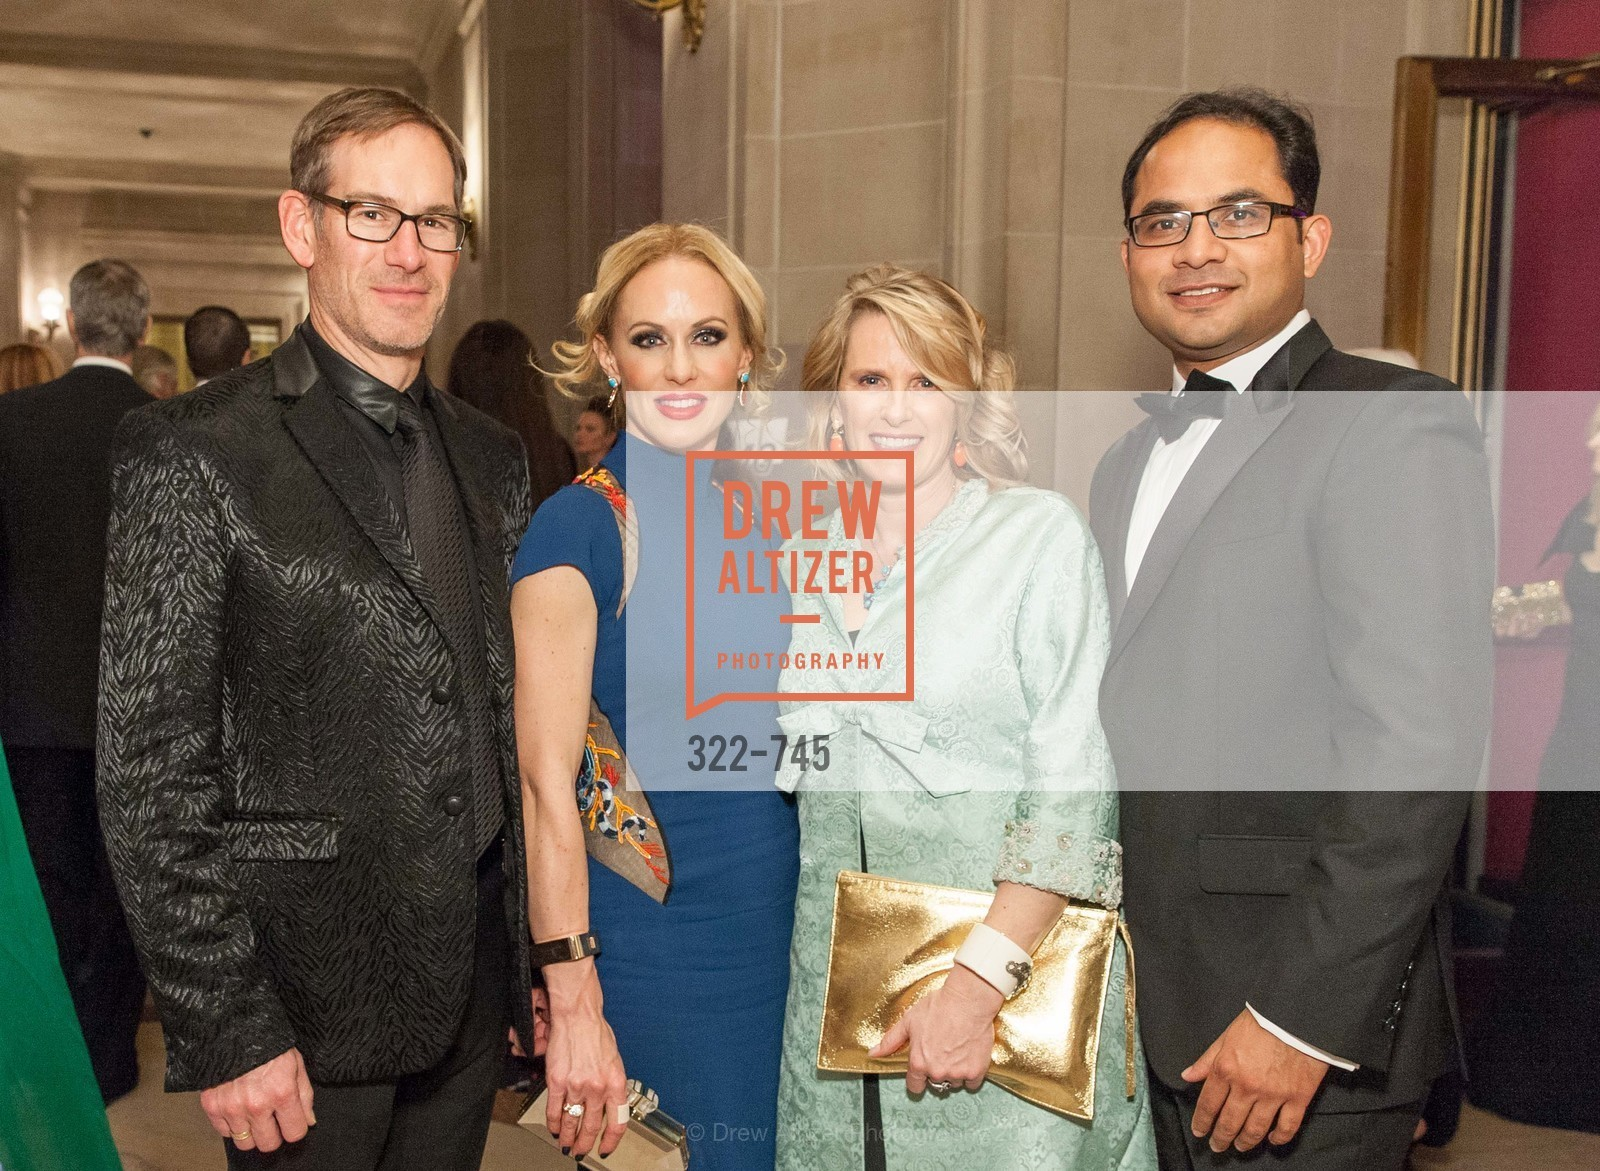 Chris Hollenbeck, Holly Hollenbeck, Marie Hurabiell, Mainul Mondal, San Francisco Ballet 2016 Opening Night Gala Part 2, San Francisco City Hall, January 21st, 2016,Drew Altizer, Drew Altizer Photography, full-service agency, private events, San Francisco photographer, photographer california